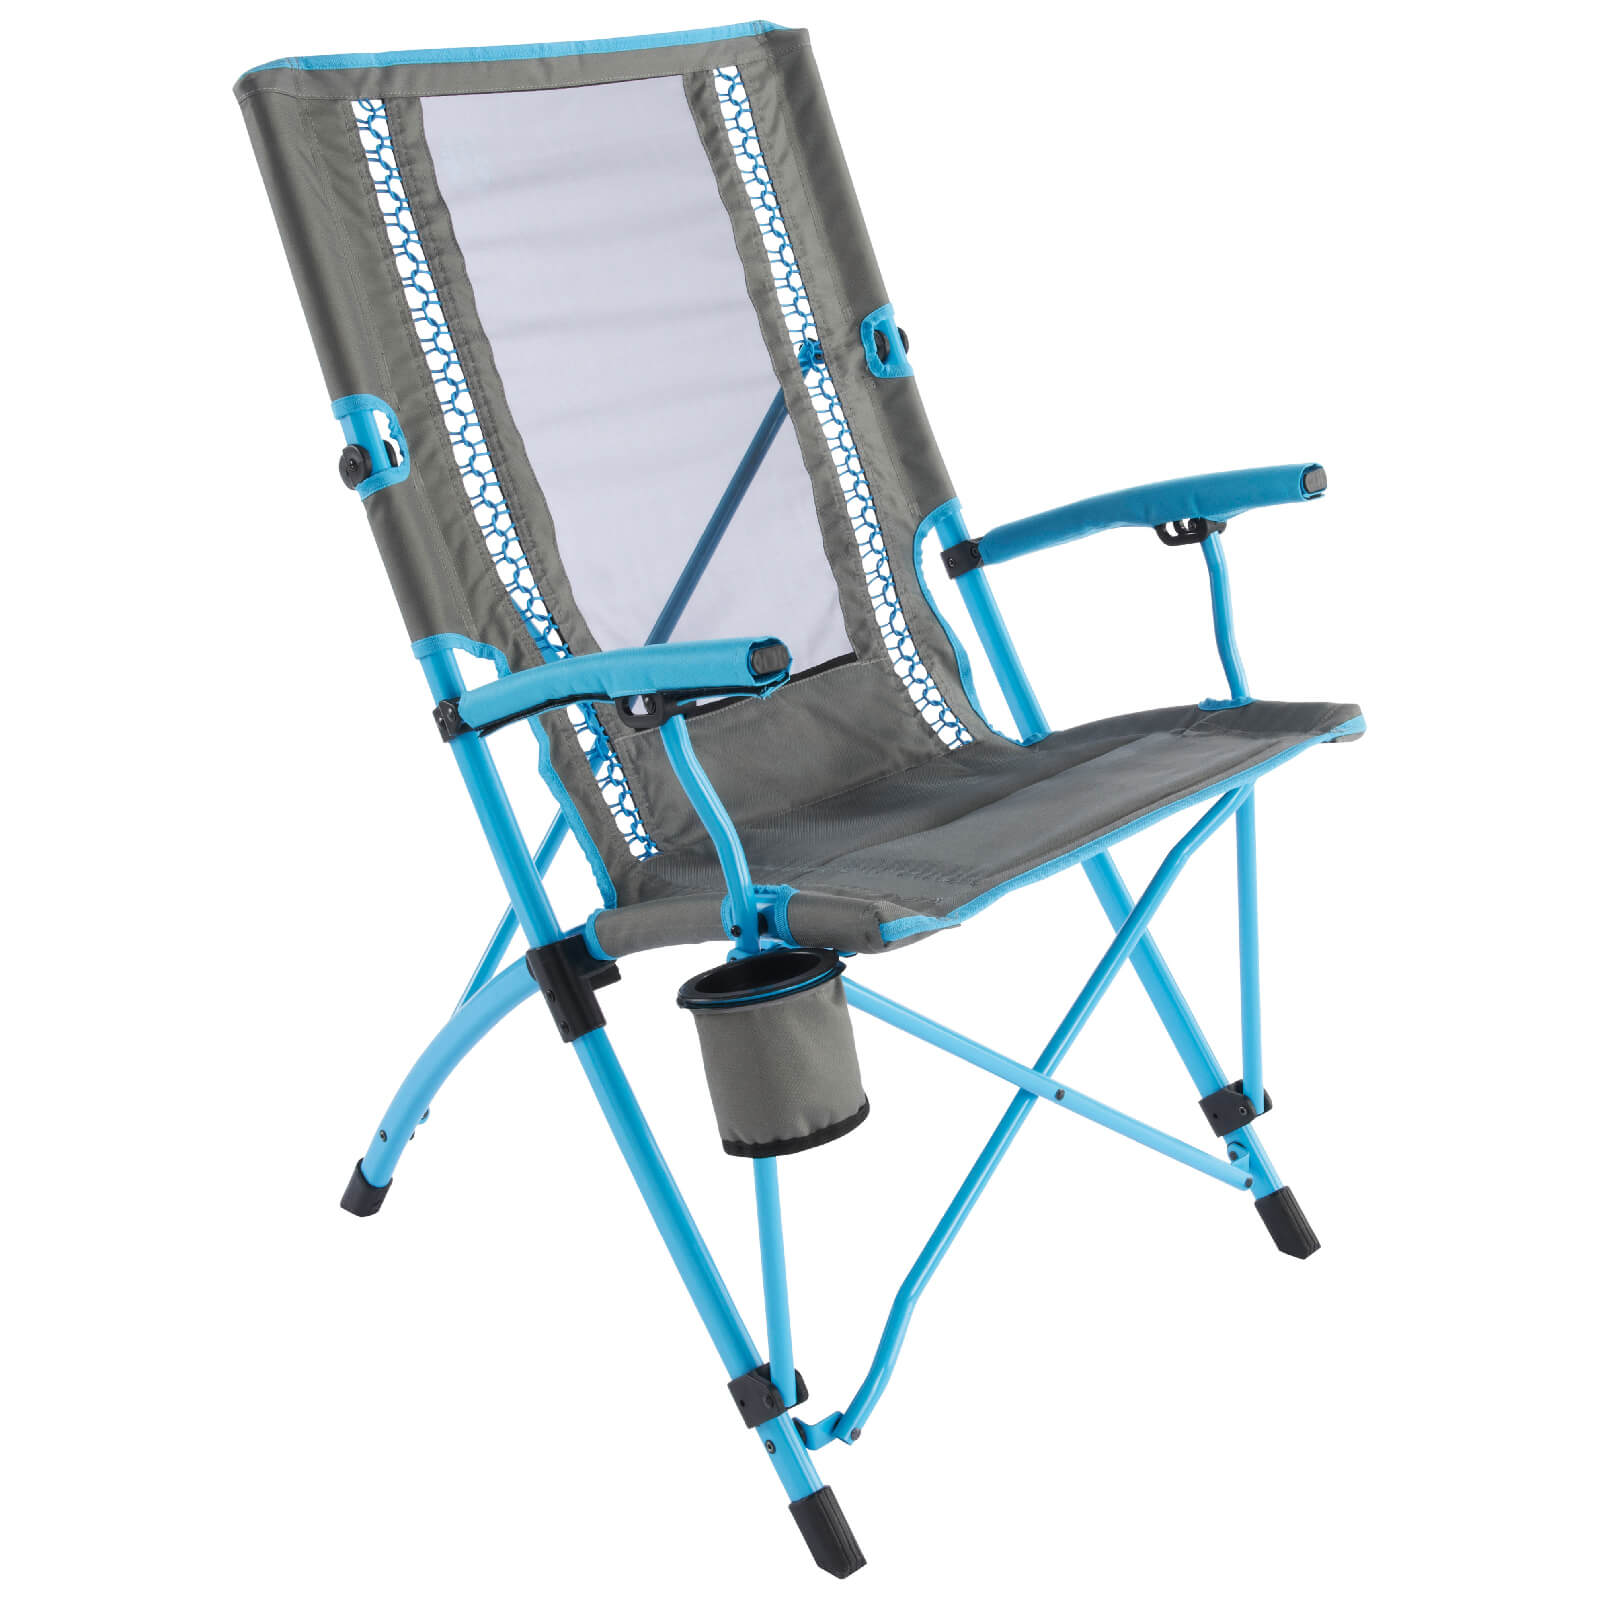 Coleman Bungee Interlock Sling Chair - Blue